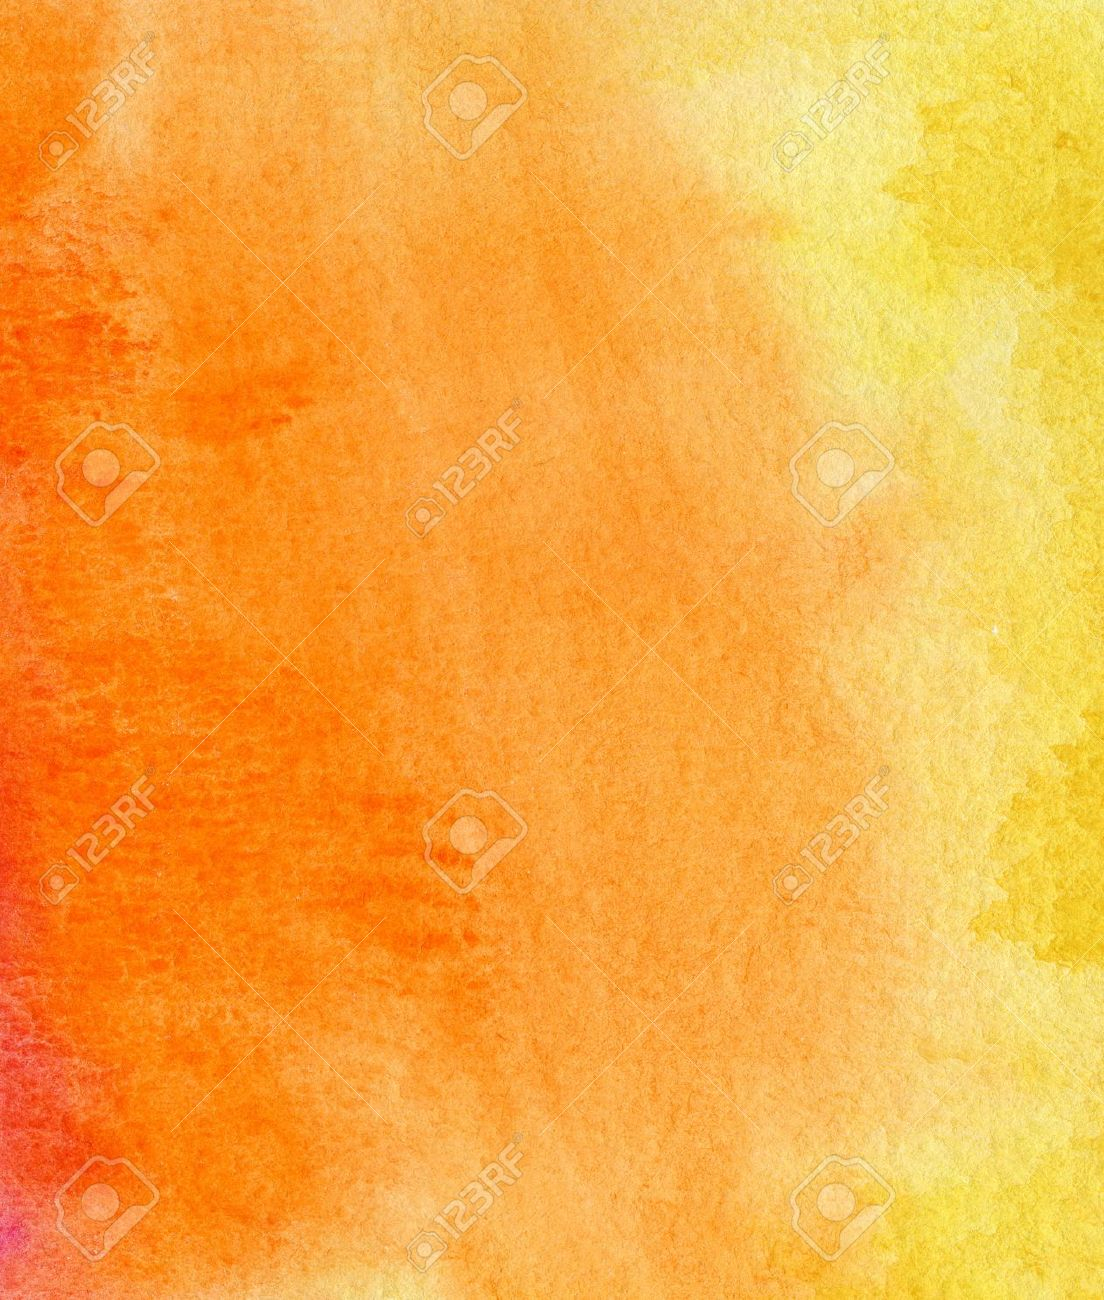 Abstract Yellow Red And Orange Watercolor Background